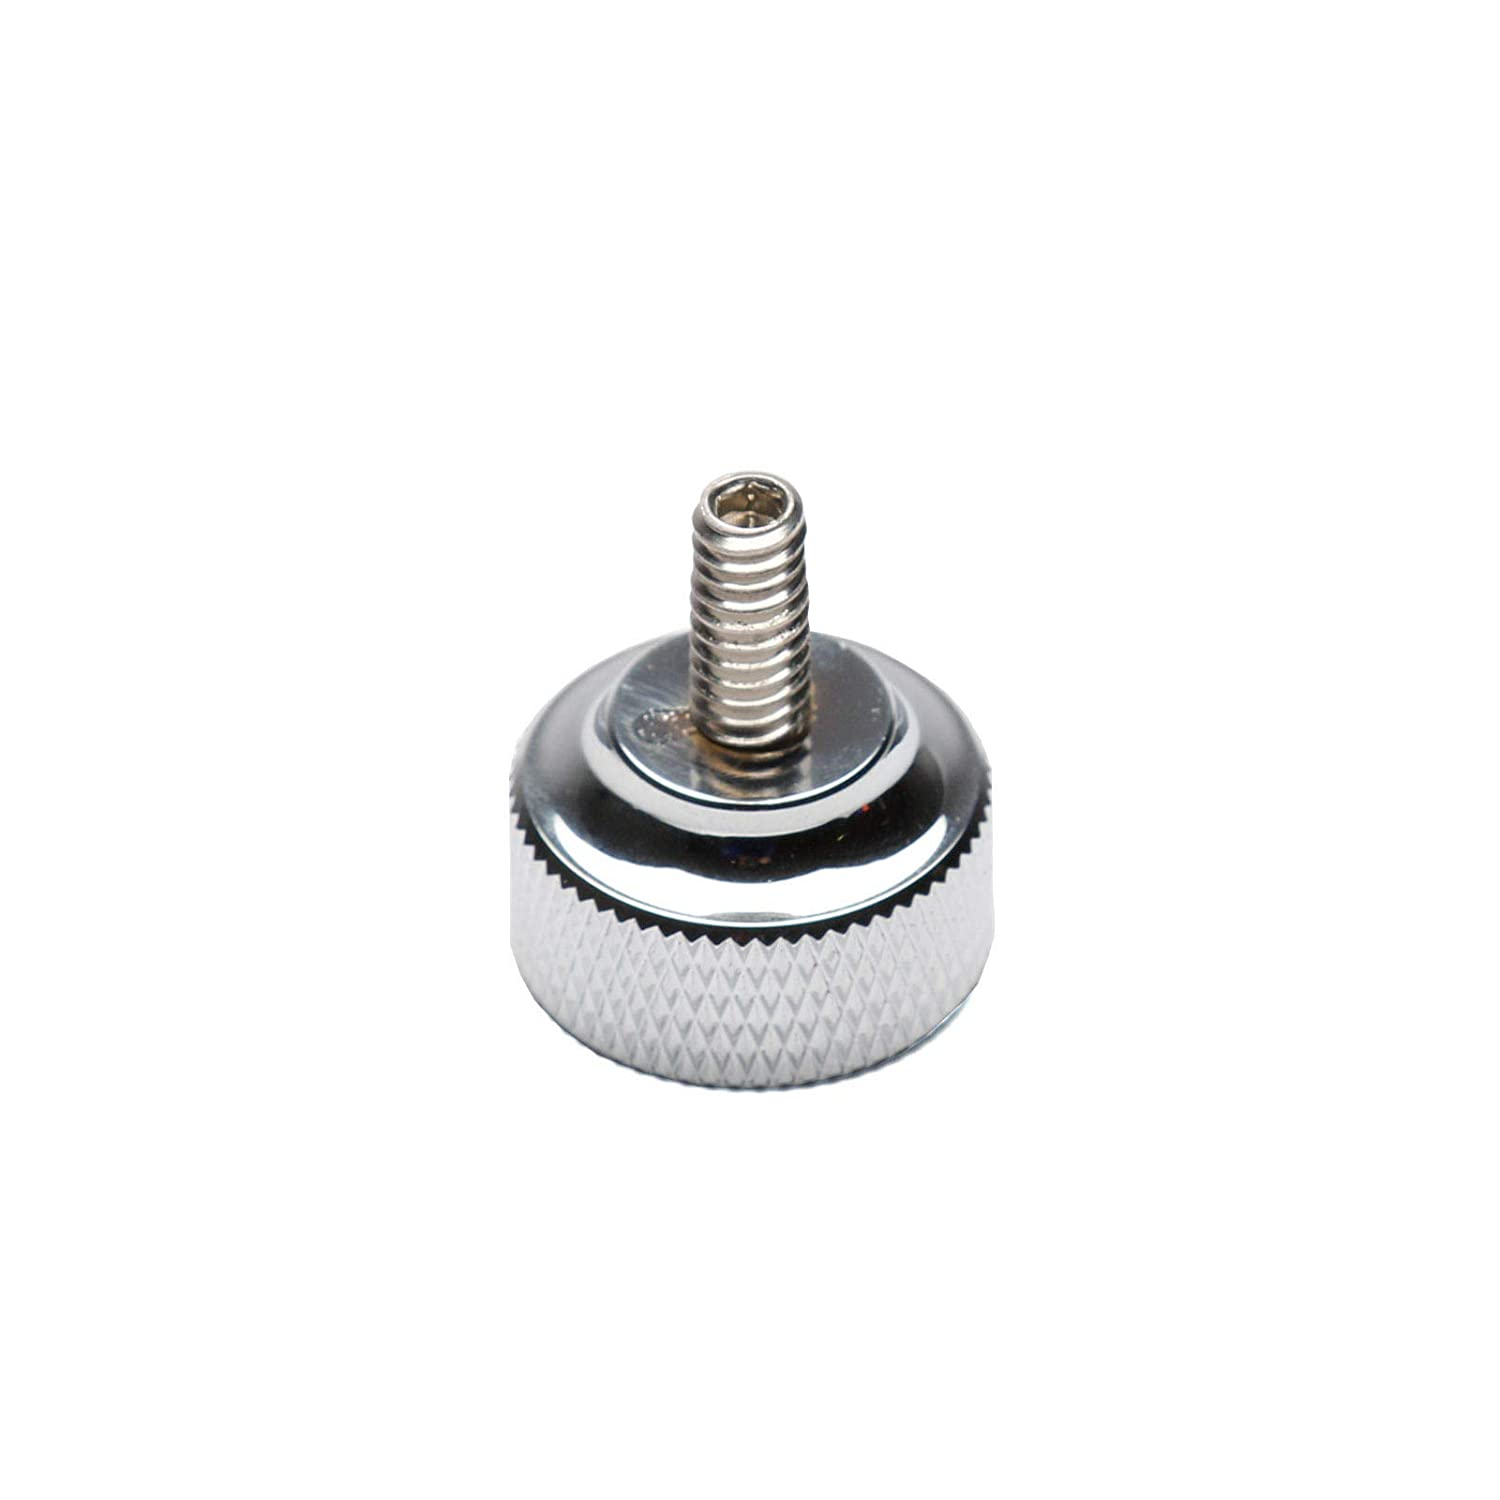 Chrome 1//4-20 Thread Knurled Seat Thumbscrew Bolt for Harley-Davidson Models